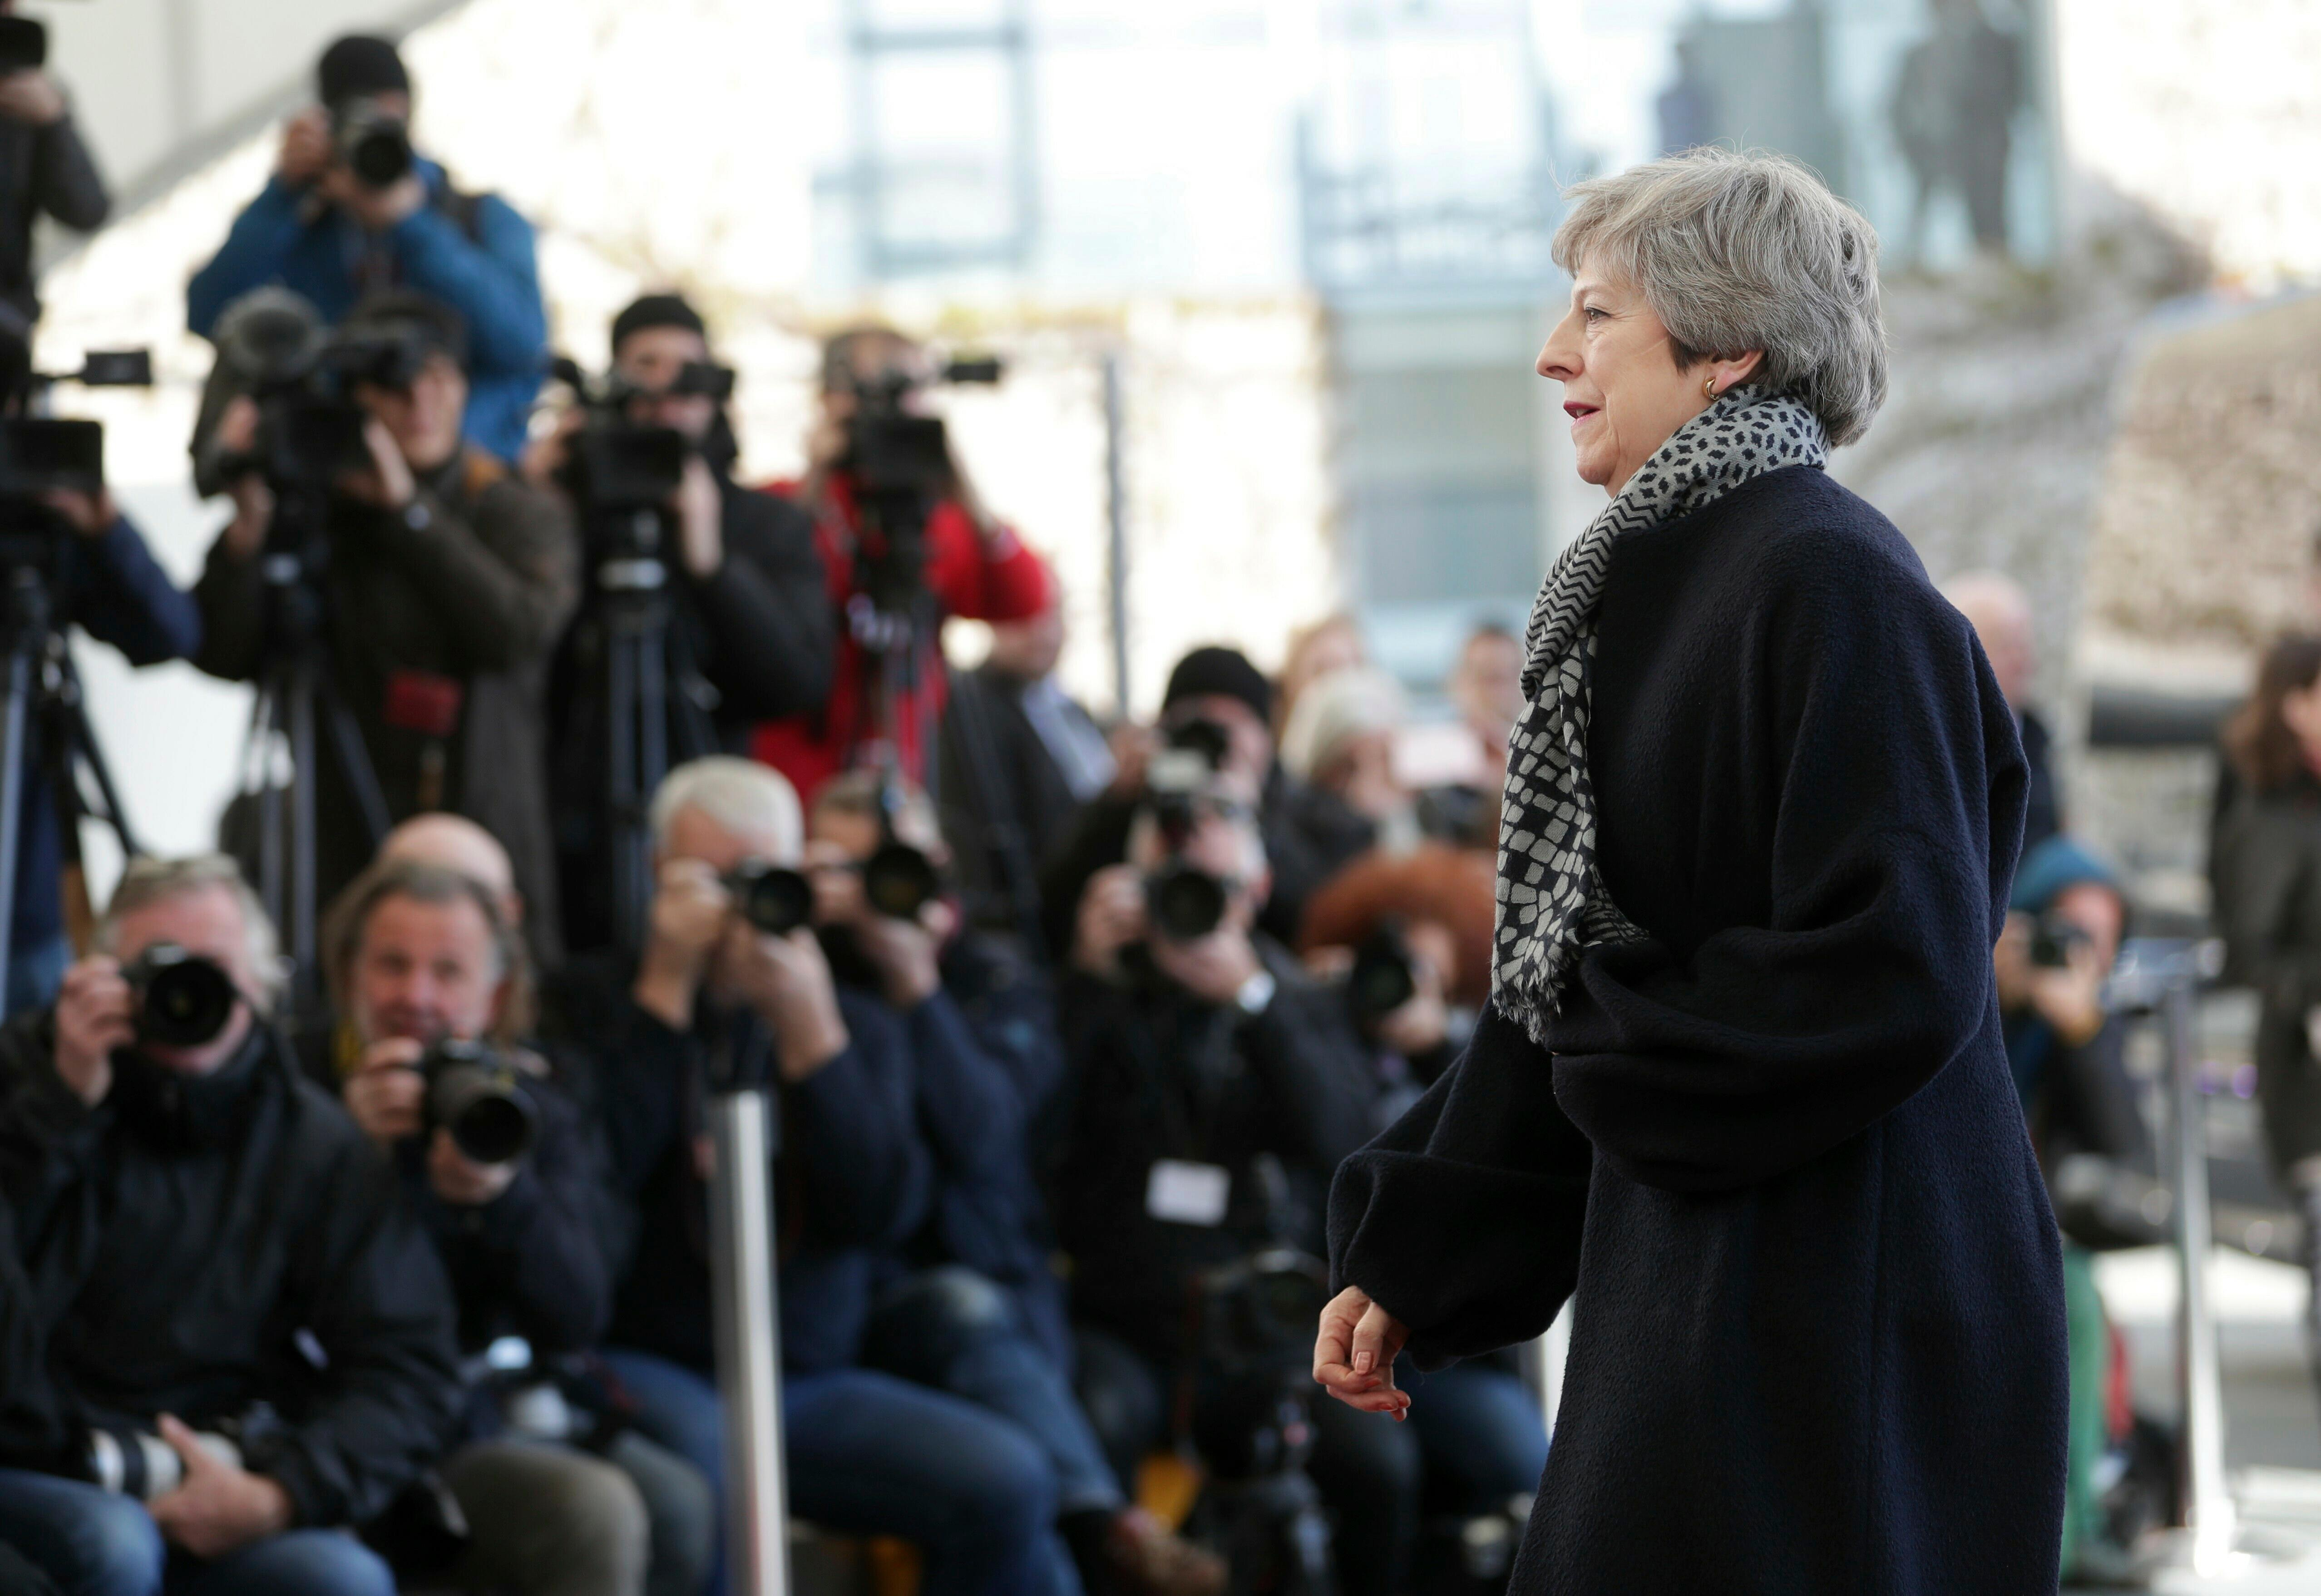 British Prime Minister Theresa May arrives to meet German Chancellor Angela Merkel at the chancellery in Berlin, Germany, Tuesday, April 9, 2019. Prime Minister Theresa May will hold talks with the leaders of Germany and France Tuesday ahead of a key Brexit summit this week. (AP Photo/Michael Sohn)